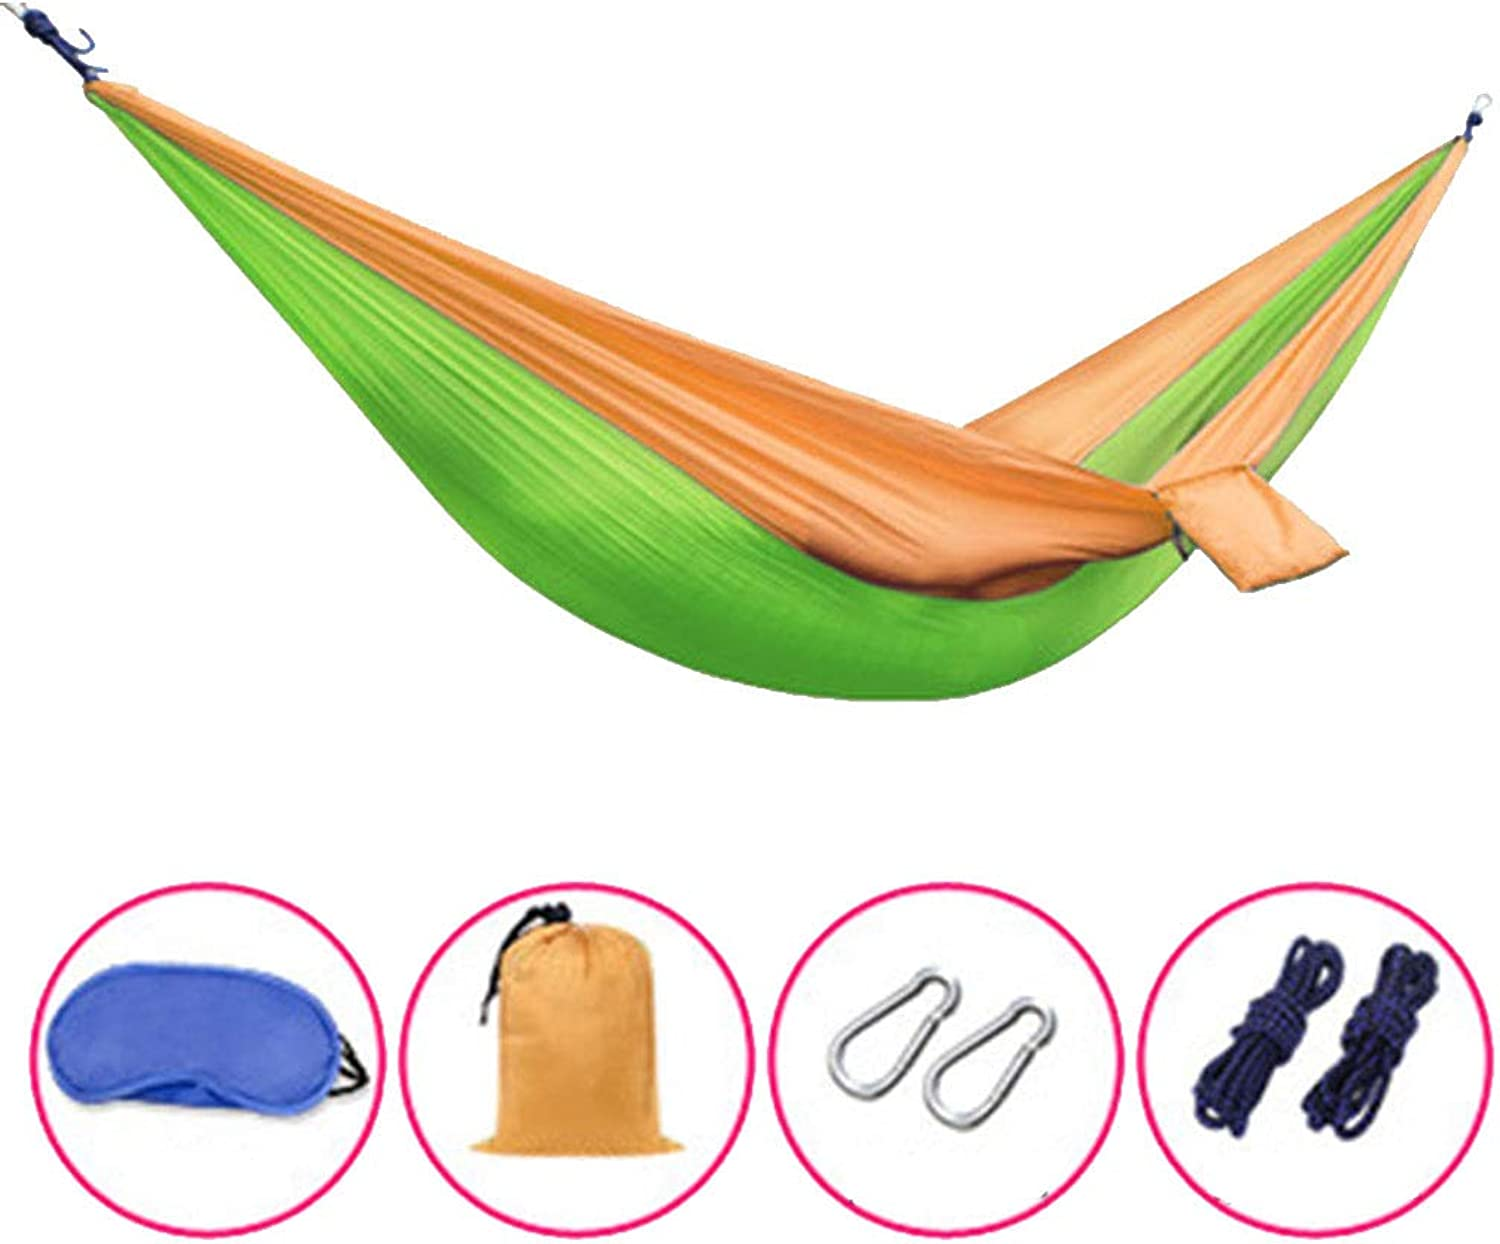 CUUYQ Camping Travel Hammocks, Portable Hammocks Includes Nylon Straps & Carabiners Camping Hammocks with Travel Bag for Outdoor Indoor,Green 2_250x130cm 210KG